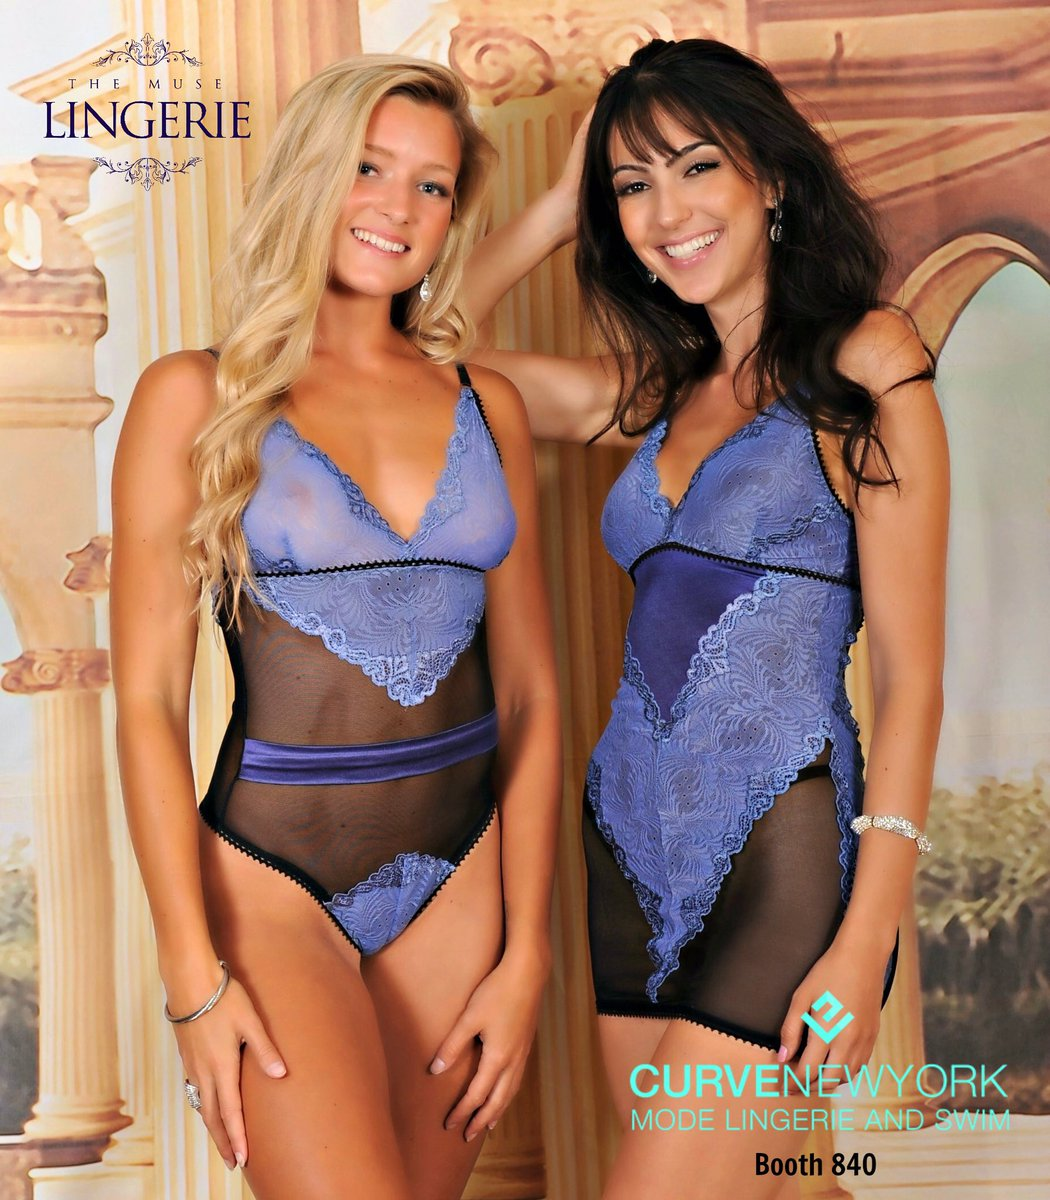 b60896bedb The Muse Lingerie ( themuselingerie)